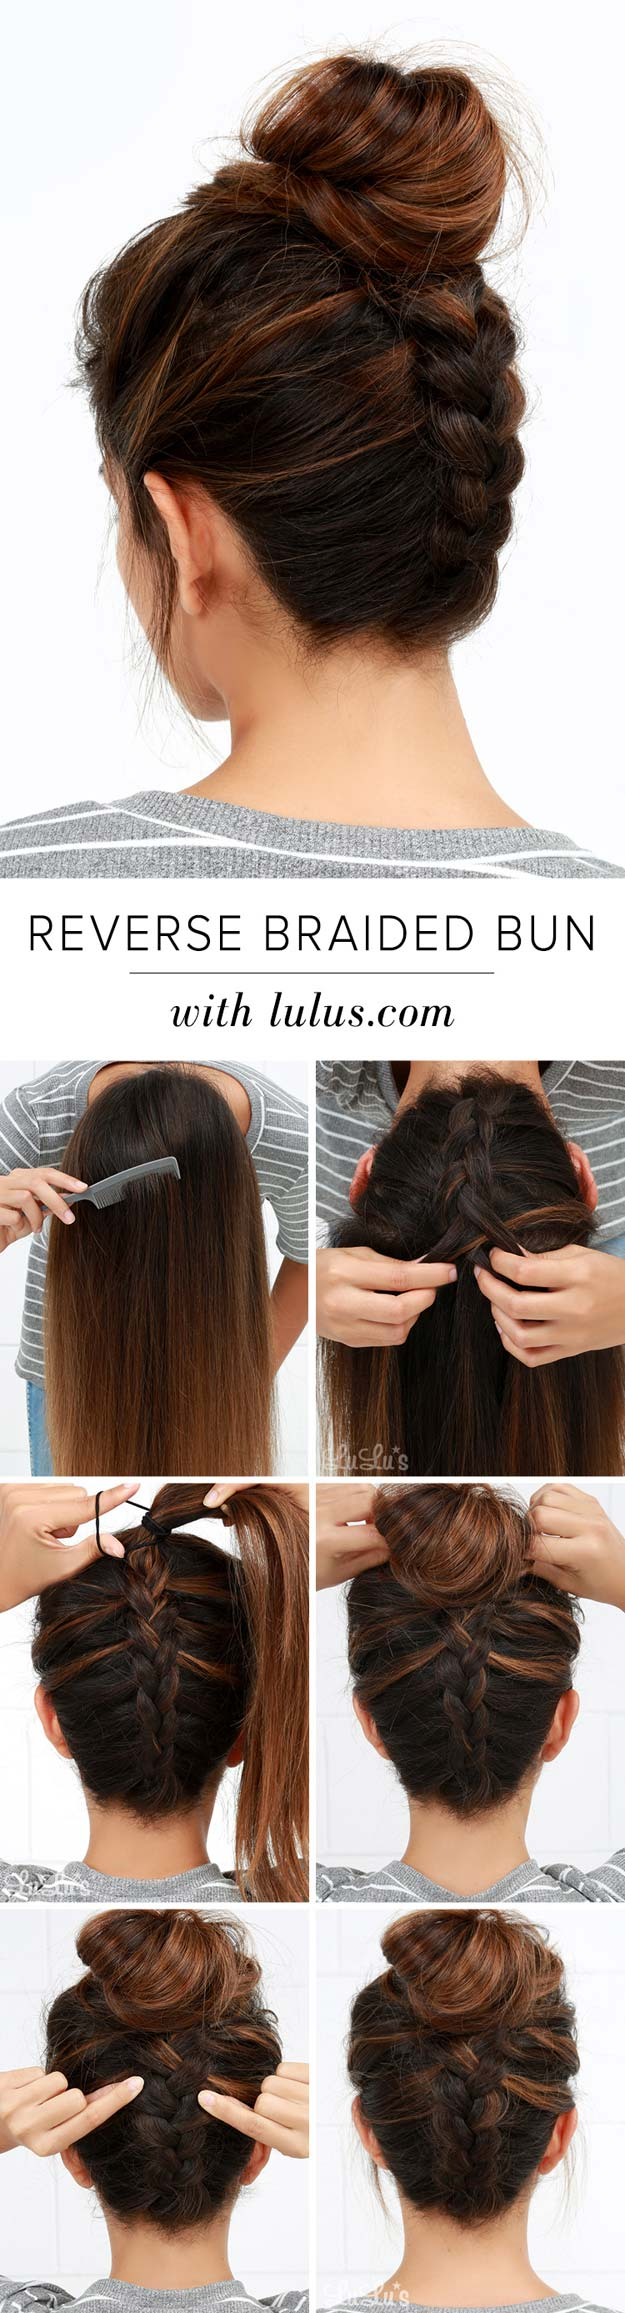 Best Hair Braiding Tutorials - Reverse Braided Bun Hair Tutorial - Easy Step by Step Tutorials for Braids - How To Braid Fishtail, French Braids, Flower Crown, Side Braids, Cornrows, Updos - Cool Braided Hairstyles for Girls, Teens and Women - School, Day and Evening, Boho, Casual and Formal Looks http://diyprojectsforteens.com/hair-braiding-tutorials